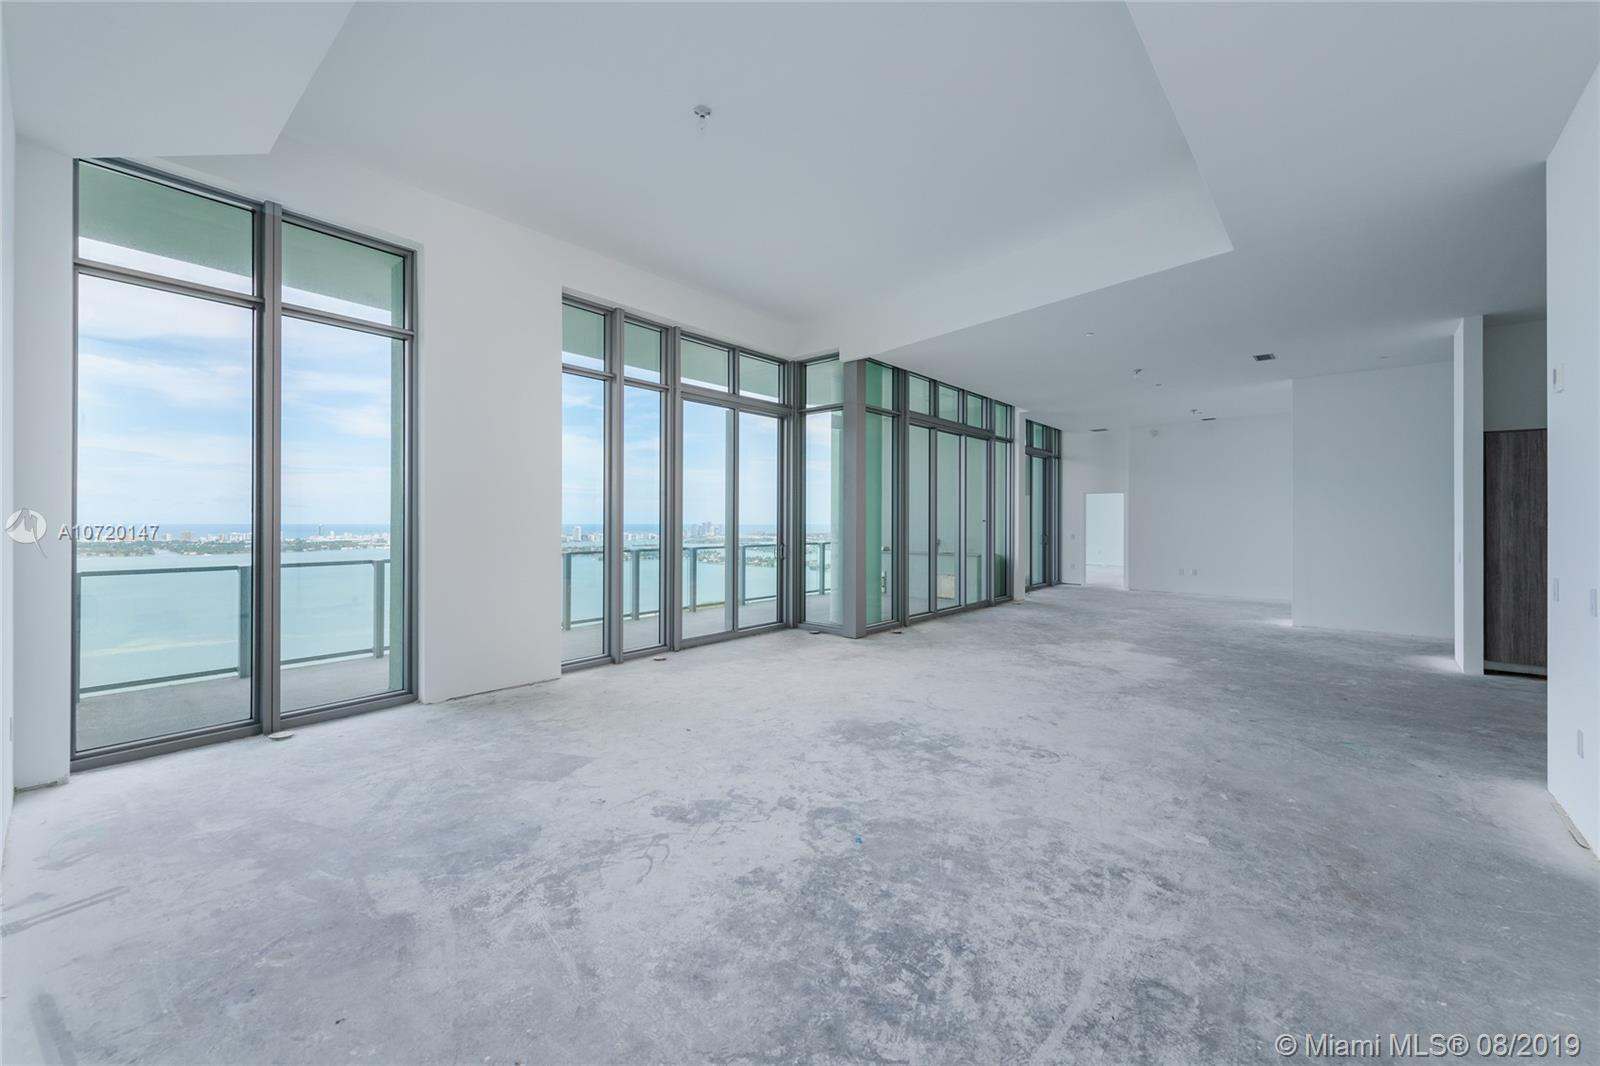 2900 N E 7th Ave #5002 For Sale A10720147, FL